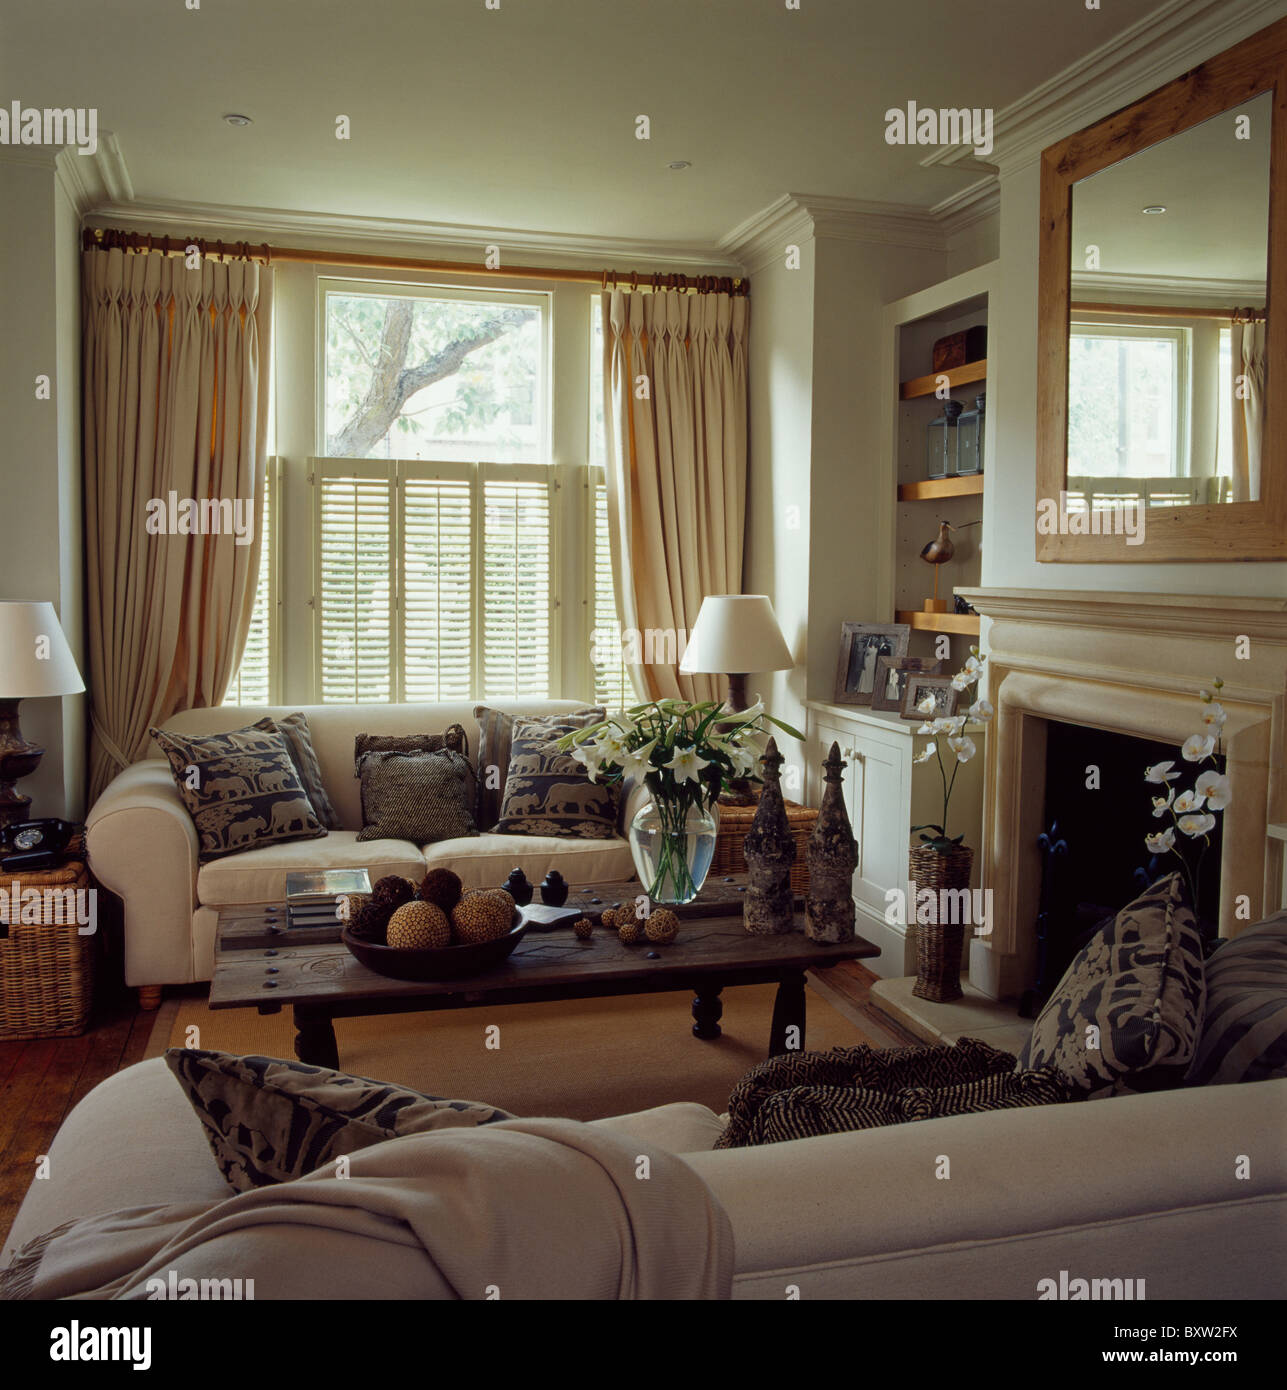 Cream Sofas In Townhouse Living Room With Cream Curtains And